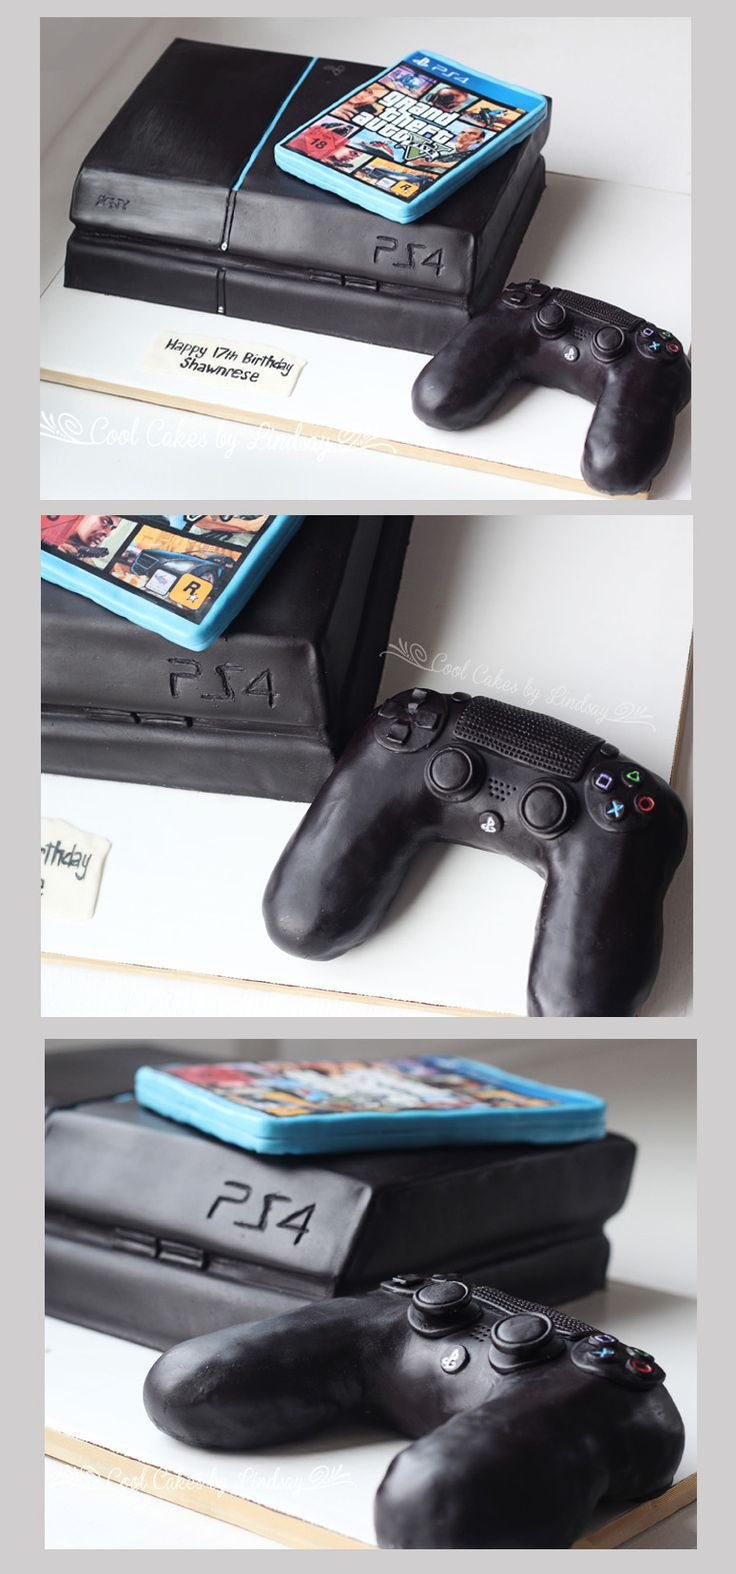 PS4 Cake!  Playstation 4 Cake!  All edible!  =)